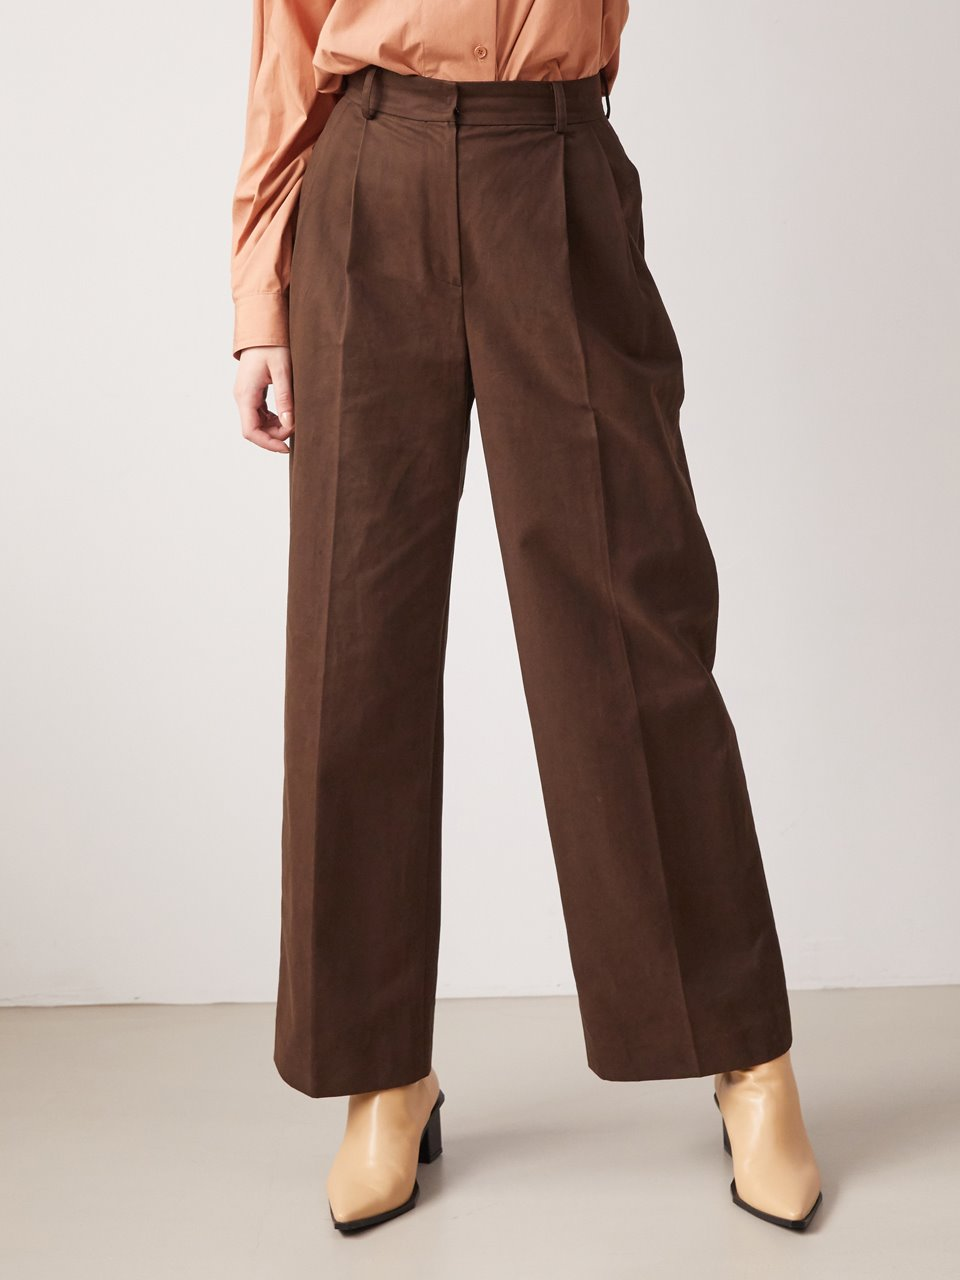 Wide cotton tuck pants - Brown